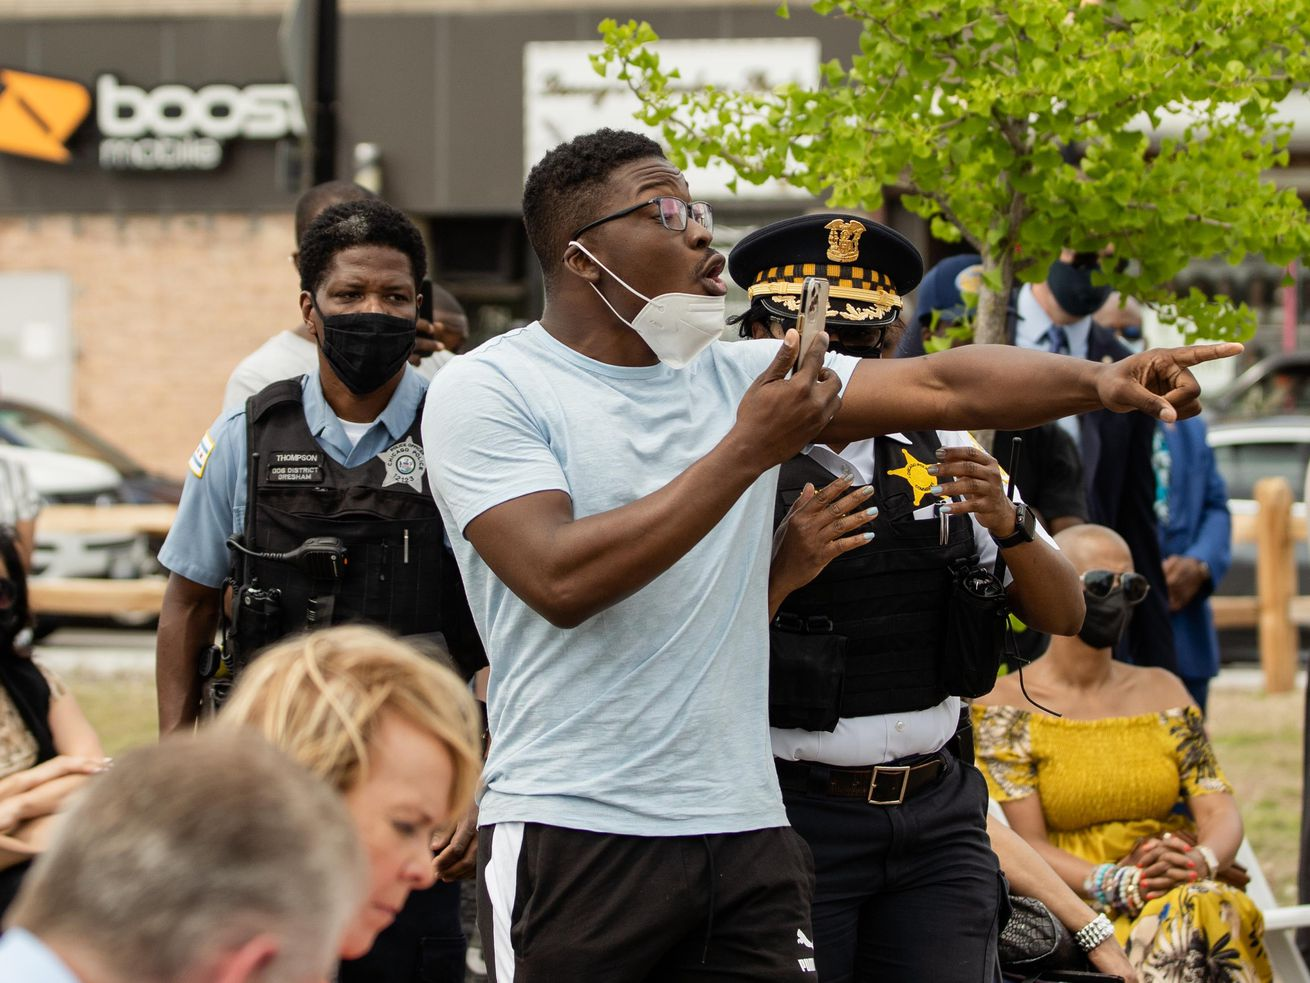 """Activist Ja'Mal Green shouts at Chicago Mayor Lori Lightfoot during a news conference near 79th and Halsted on Friday, May 20, 2021. Green accused Lightfoot of lying after she said she was """"not familiar"""" with a project he's involved with to build a youth center in Auburn Gresham."""